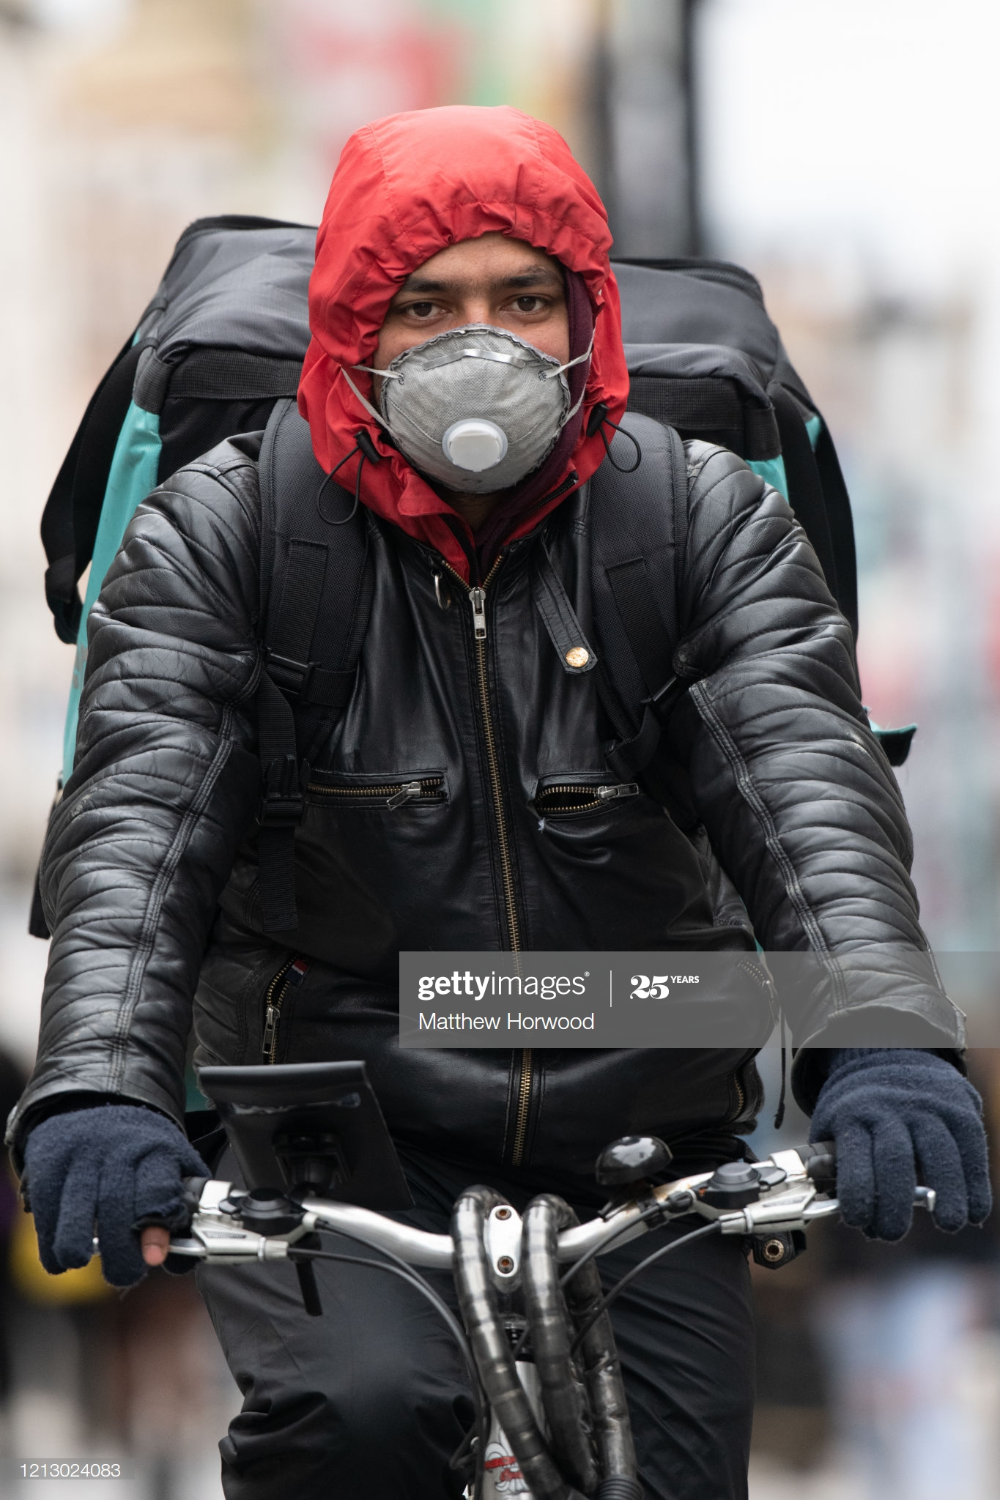 A Deliveroo worker on March 14, 2020 in Cardiff, United